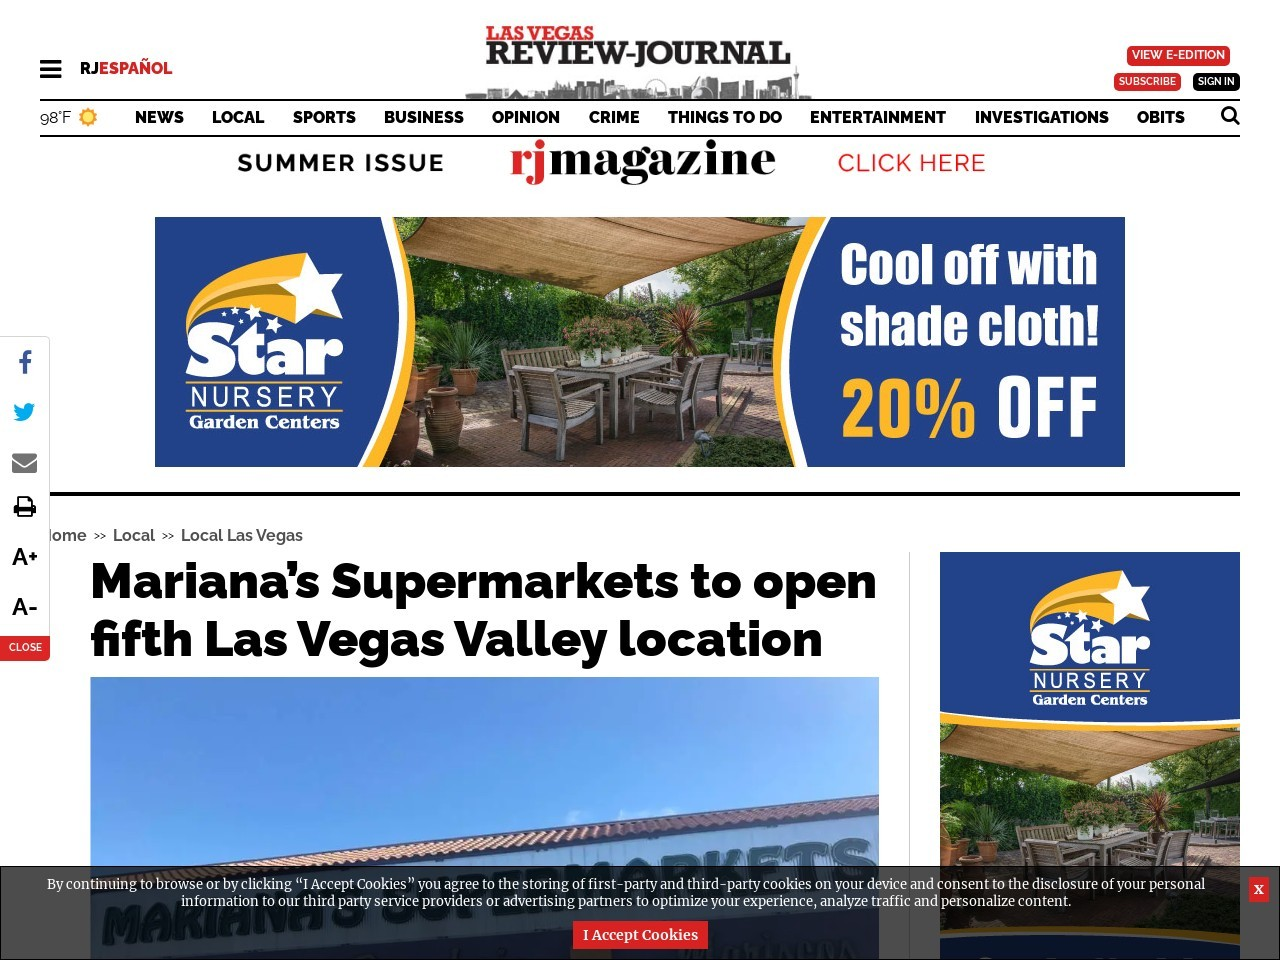 Mariana's Supermarkets to open fifth Las Vegas Valley location